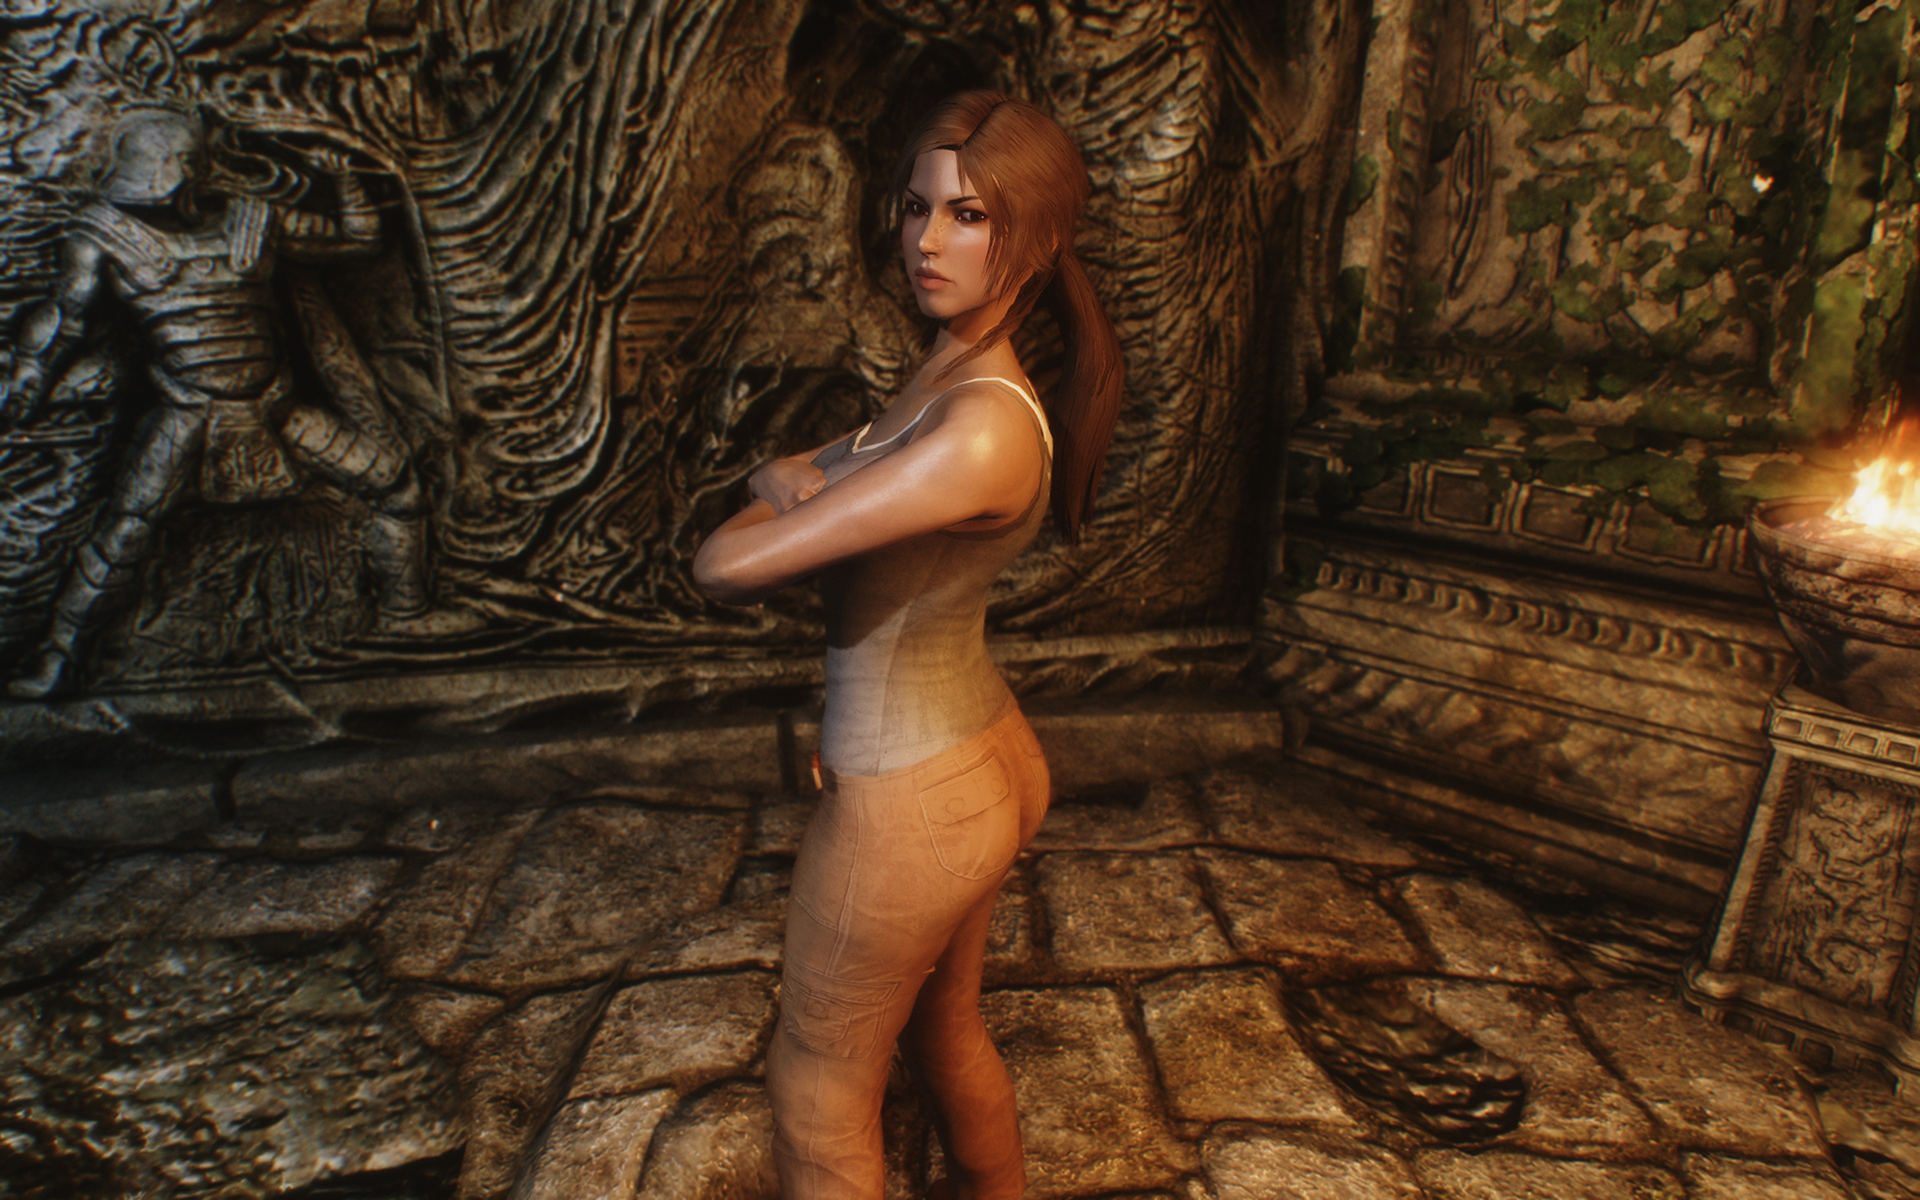 Lara croft 3 d monster bilder free sexy video